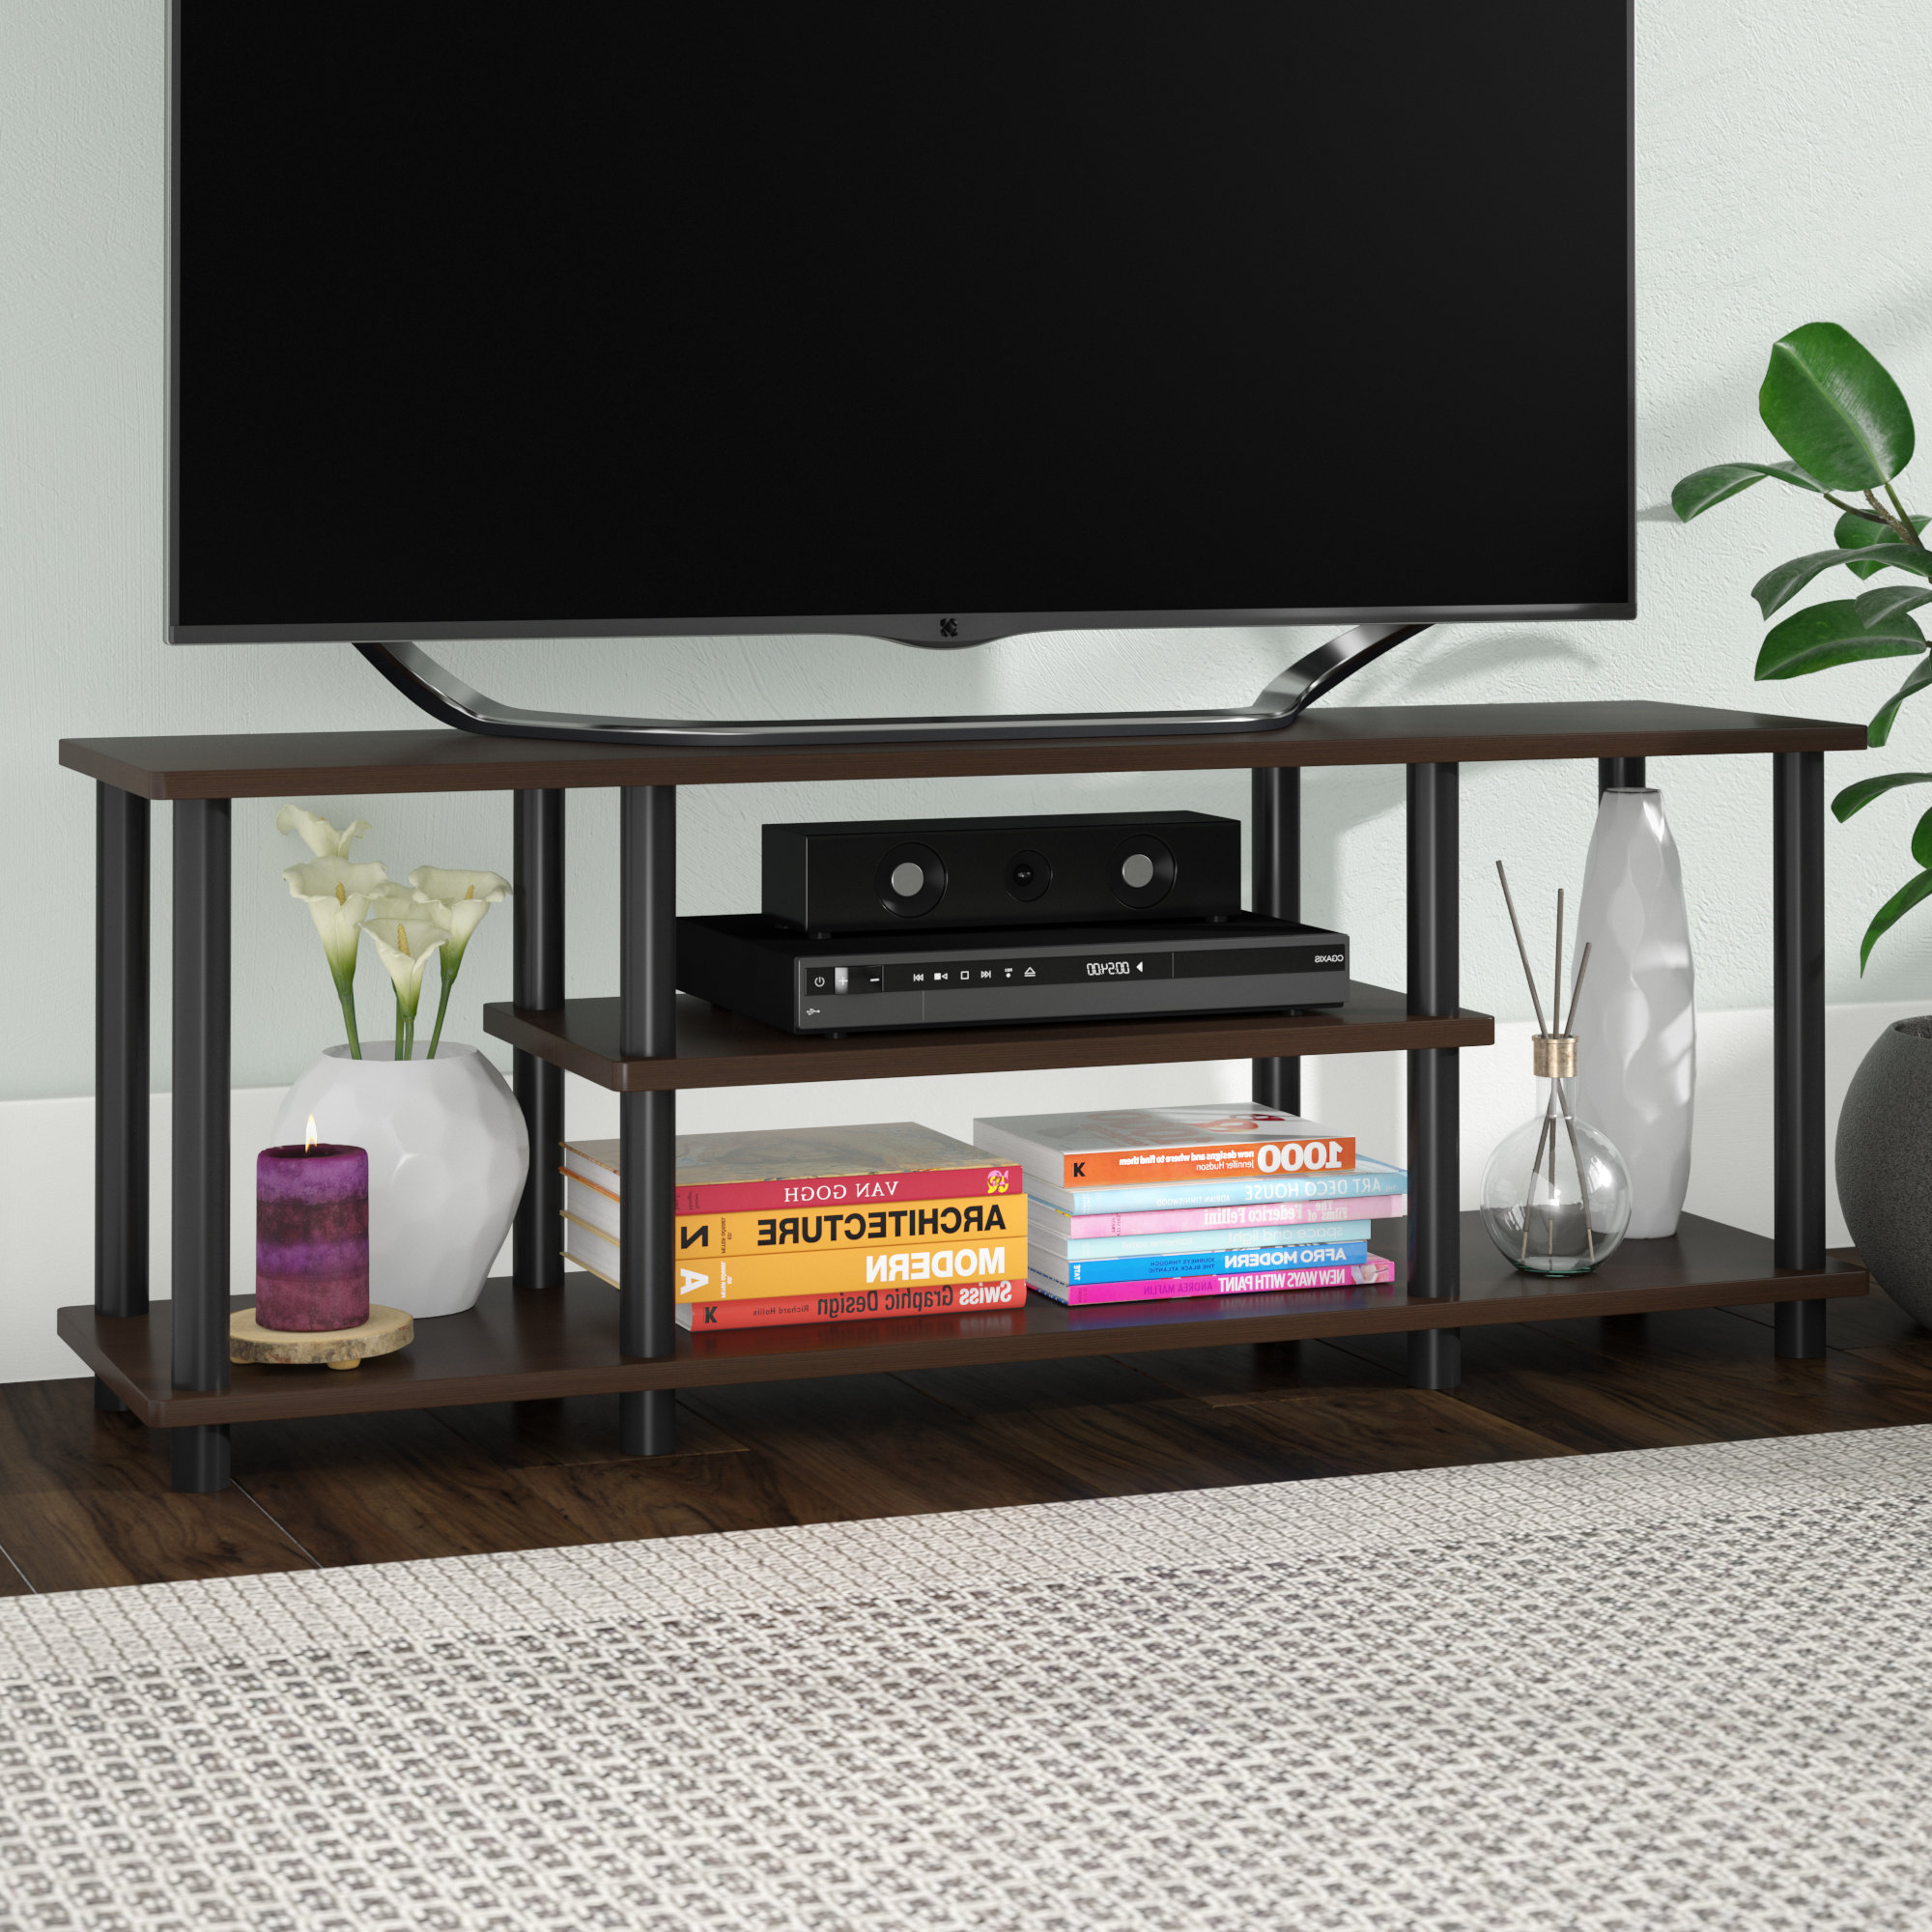 2018 Hairpin Leg Tv Stands Within 40 49 Inches Tv Stand Tv Stands & Entertainment Centers You'll Love (Gallery 16 of 20)